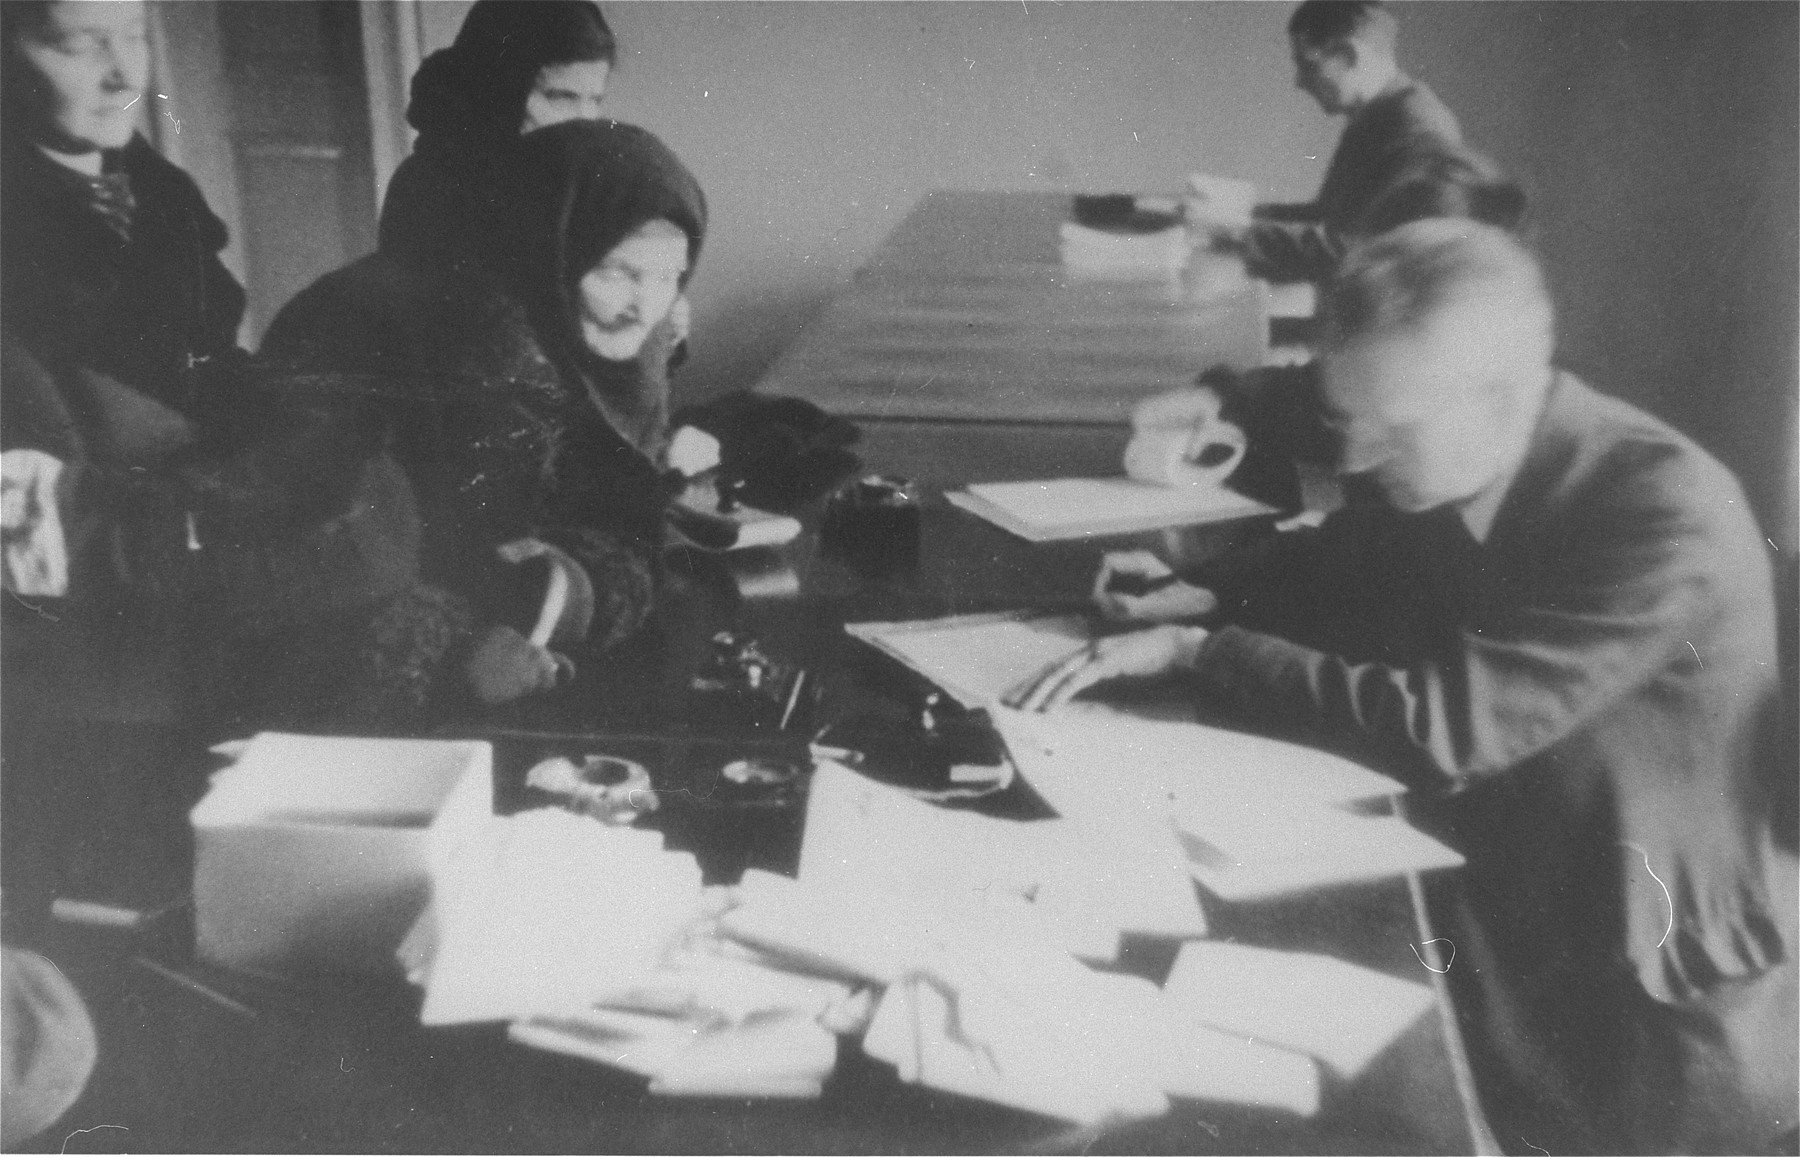 Jews obtaining work permits or ID cards in an administrative office in the Krakow ghetto.